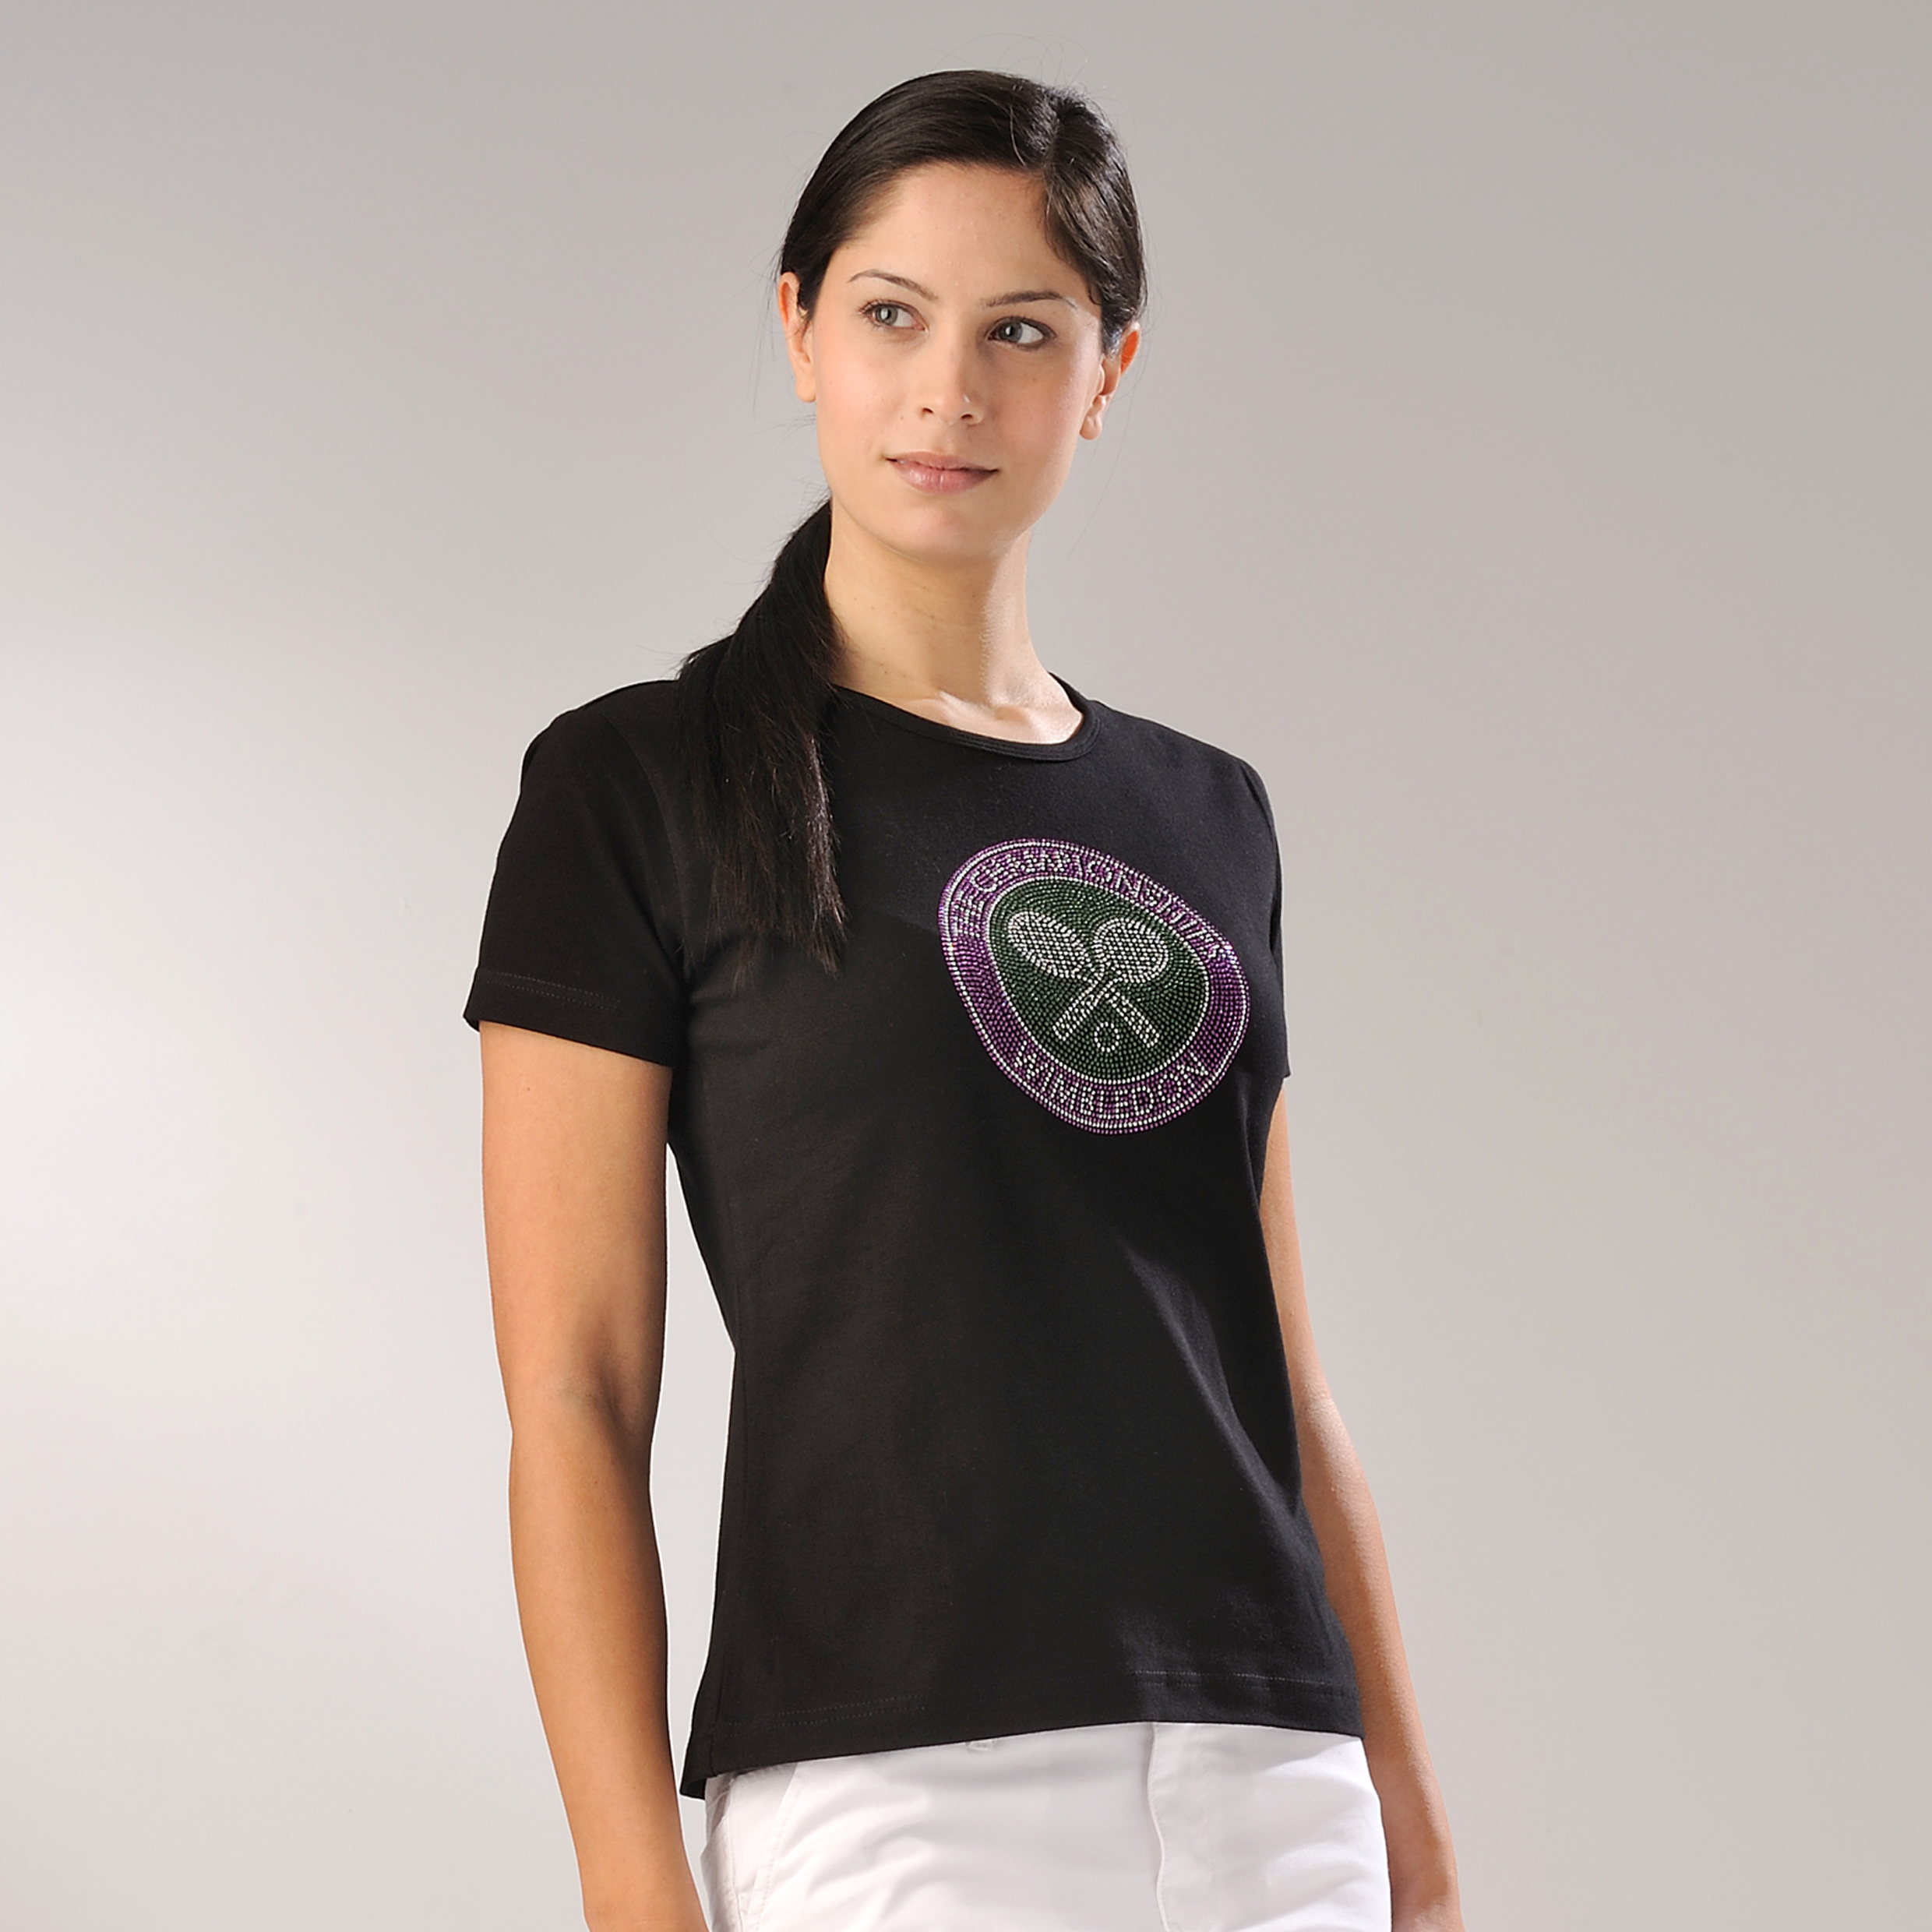 Wimbledon Rhinestone Crossed Rackets T-Shirt - Black - Womens